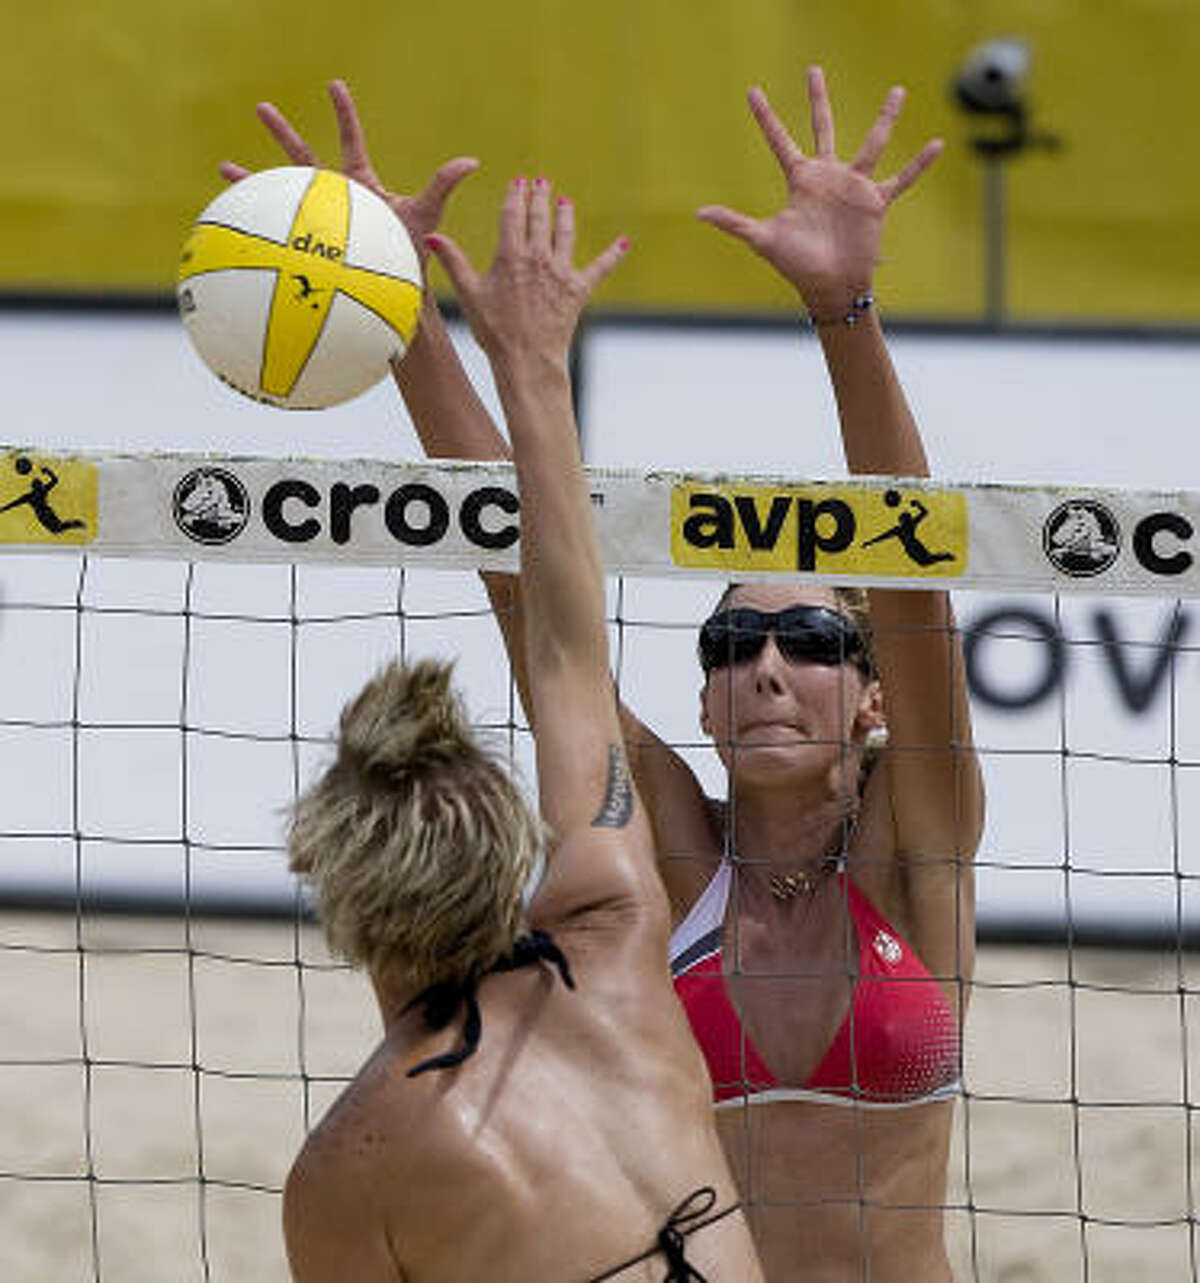 Brittany Hochevar is blocked at the net by Jenny Kropp during their match at the AVP CROCS Tour Houston Open.